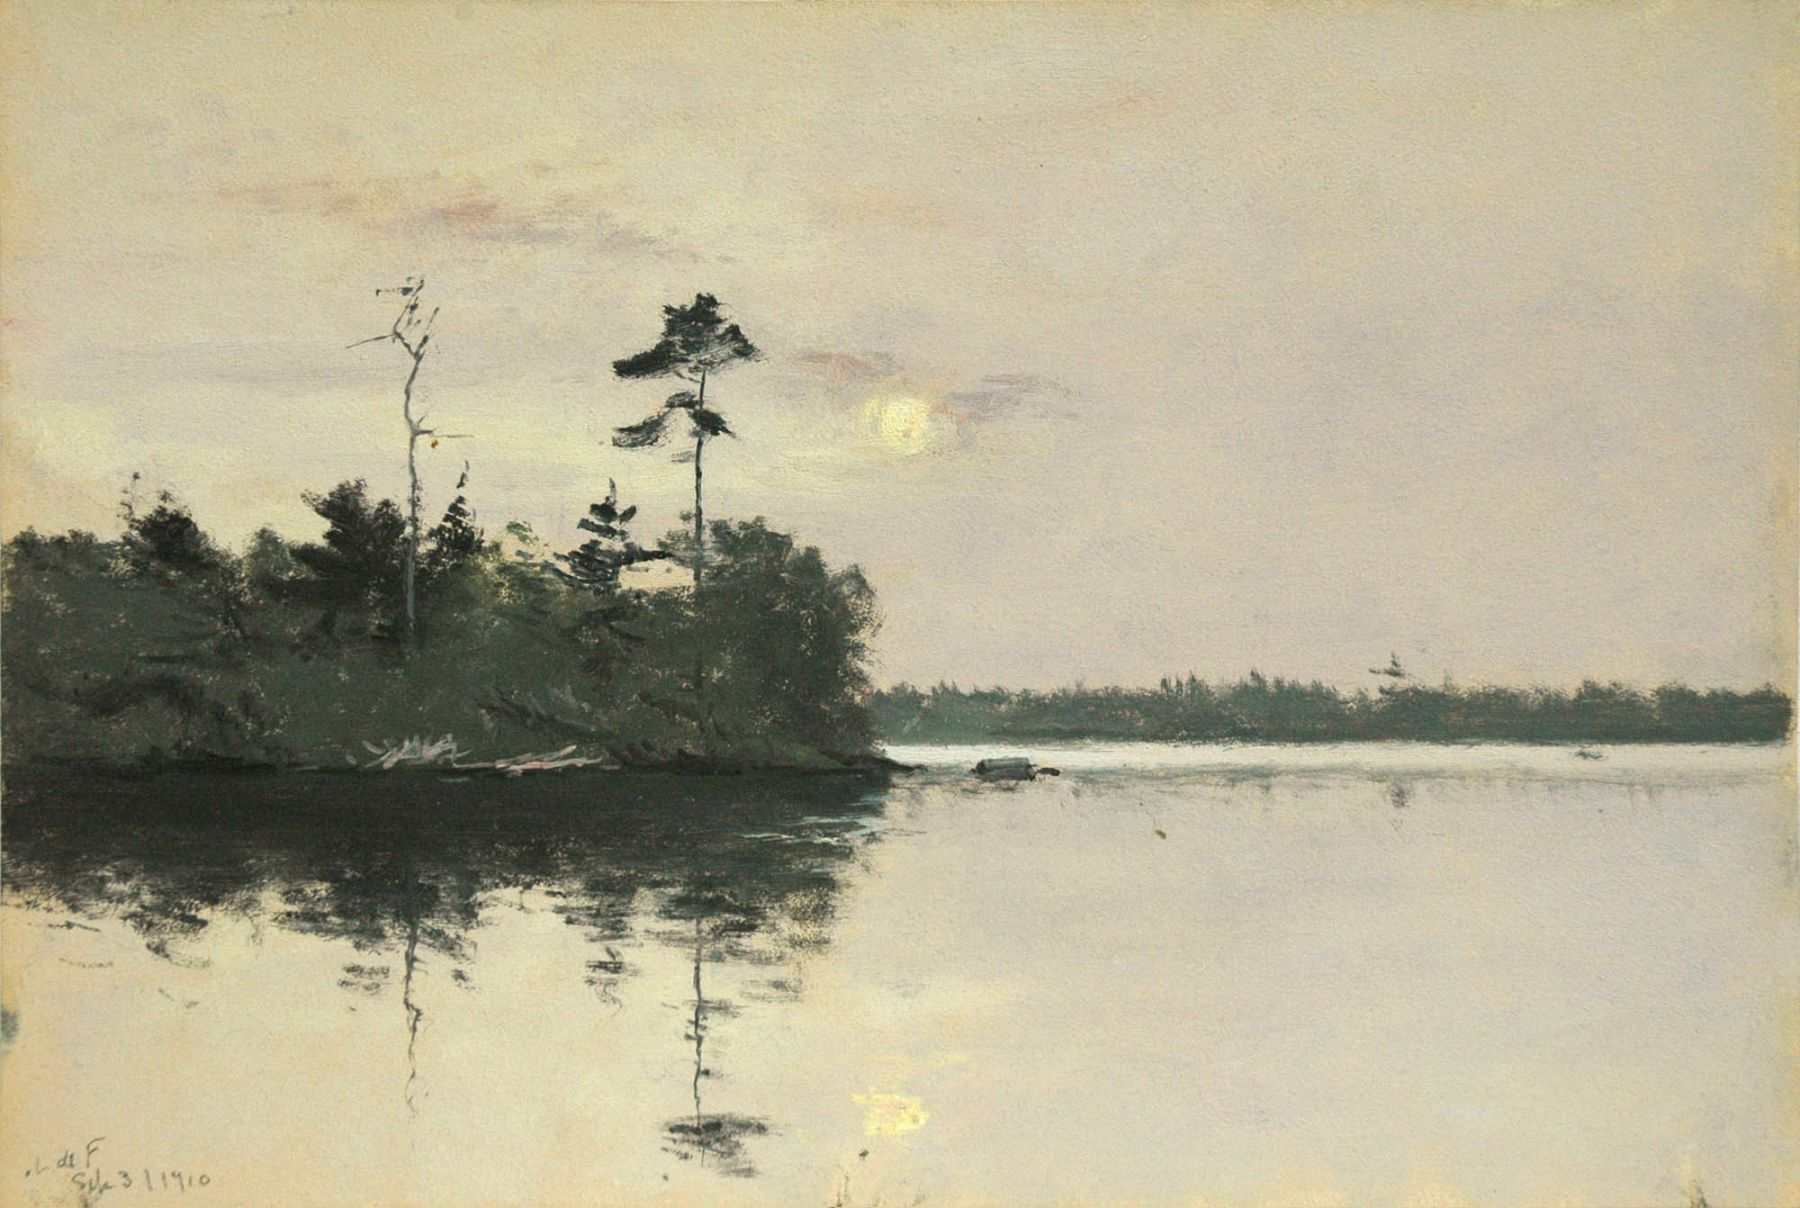 Lockwood De Forest, Daylight Full Moon with Reflection, Sept. 3, 1910.